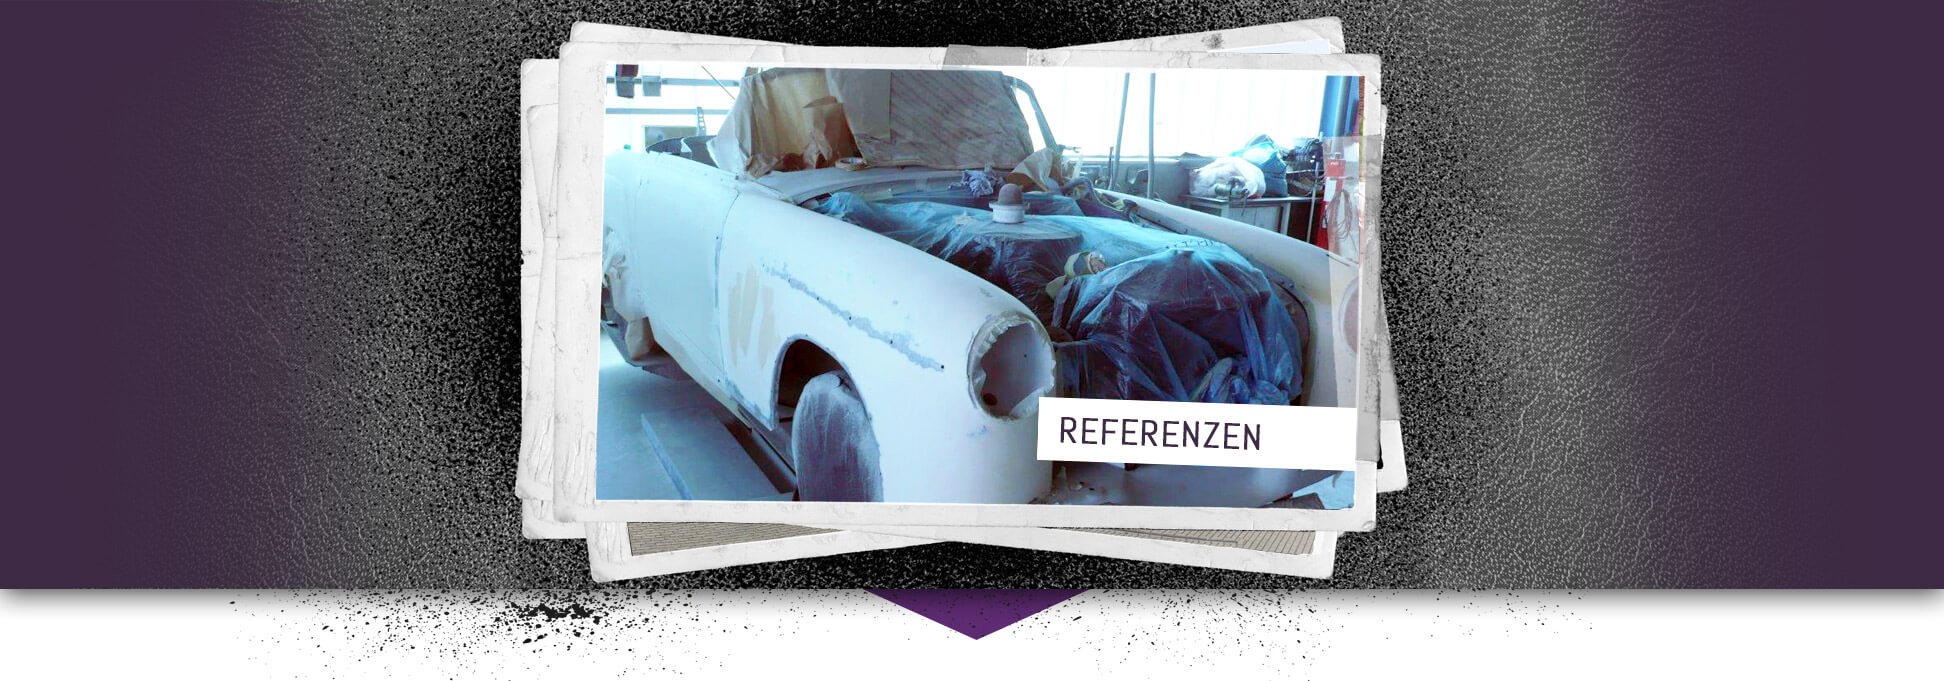 /referenzen/item/74-slider-referenz-01.html